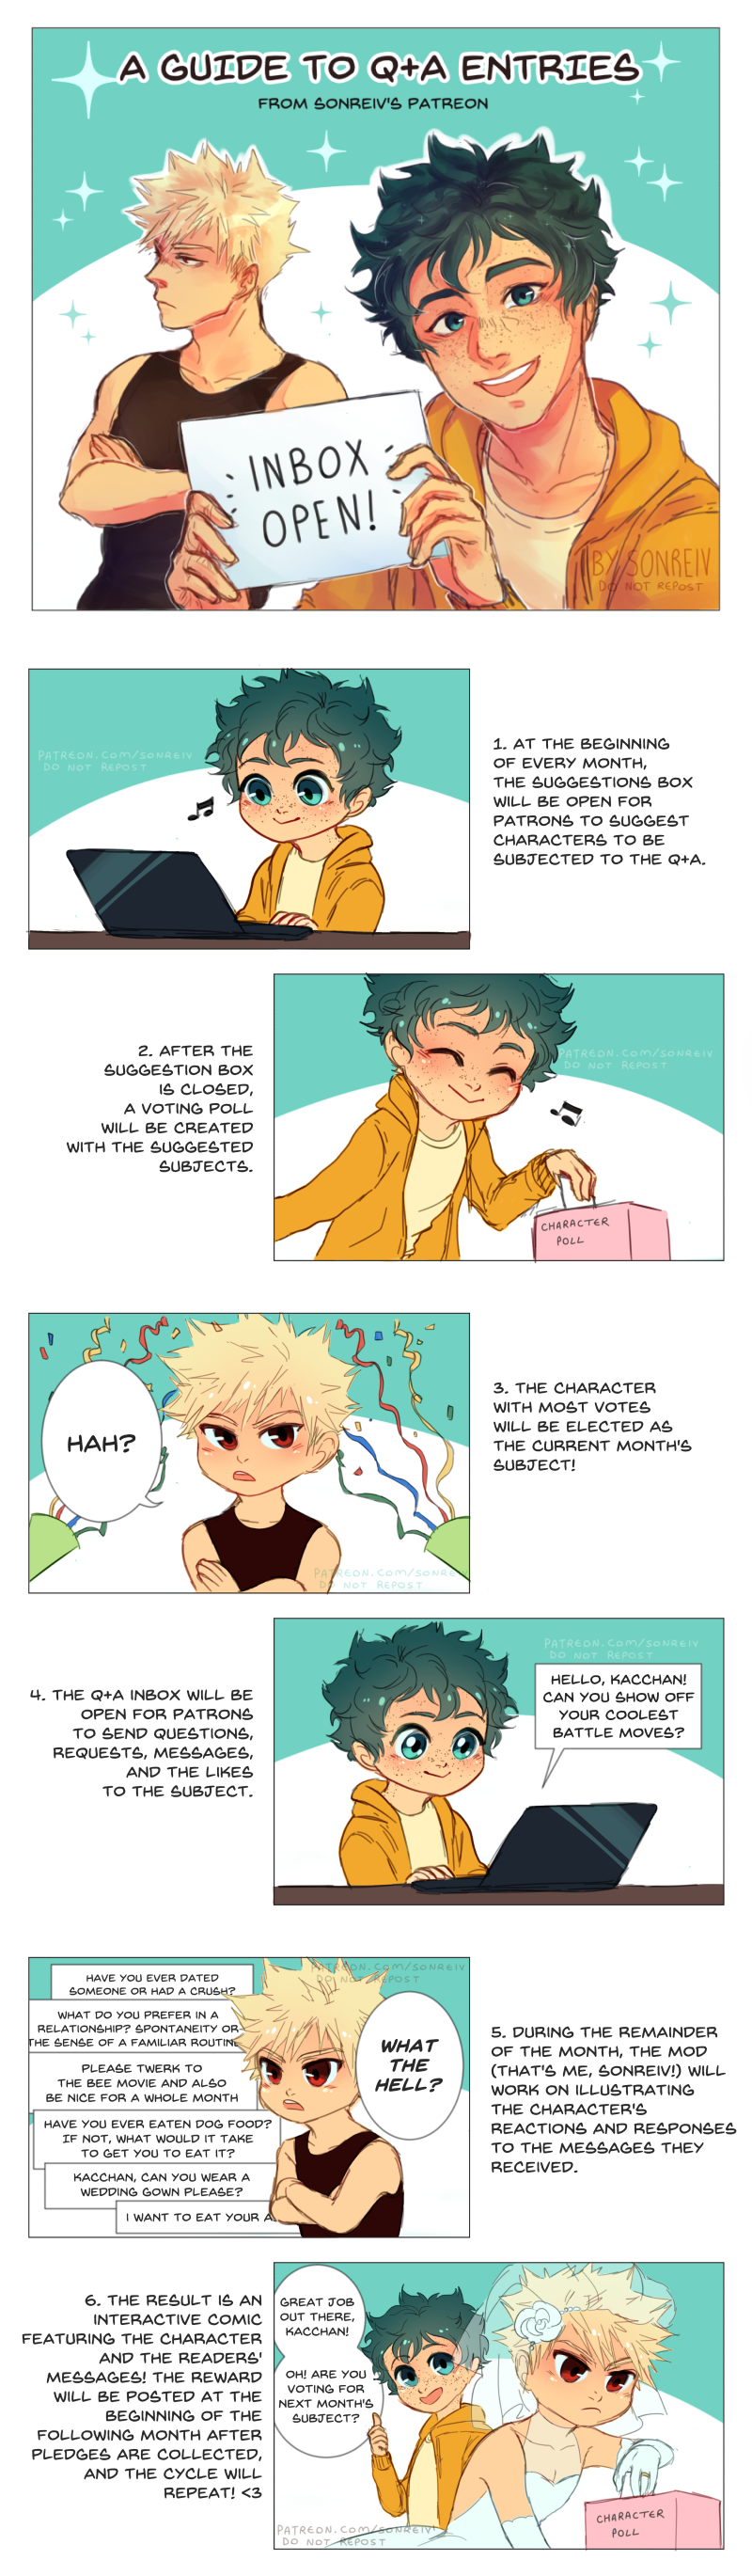 BNHA) Q+A guide comic for Patreon! by sonreiv on DeviantArt